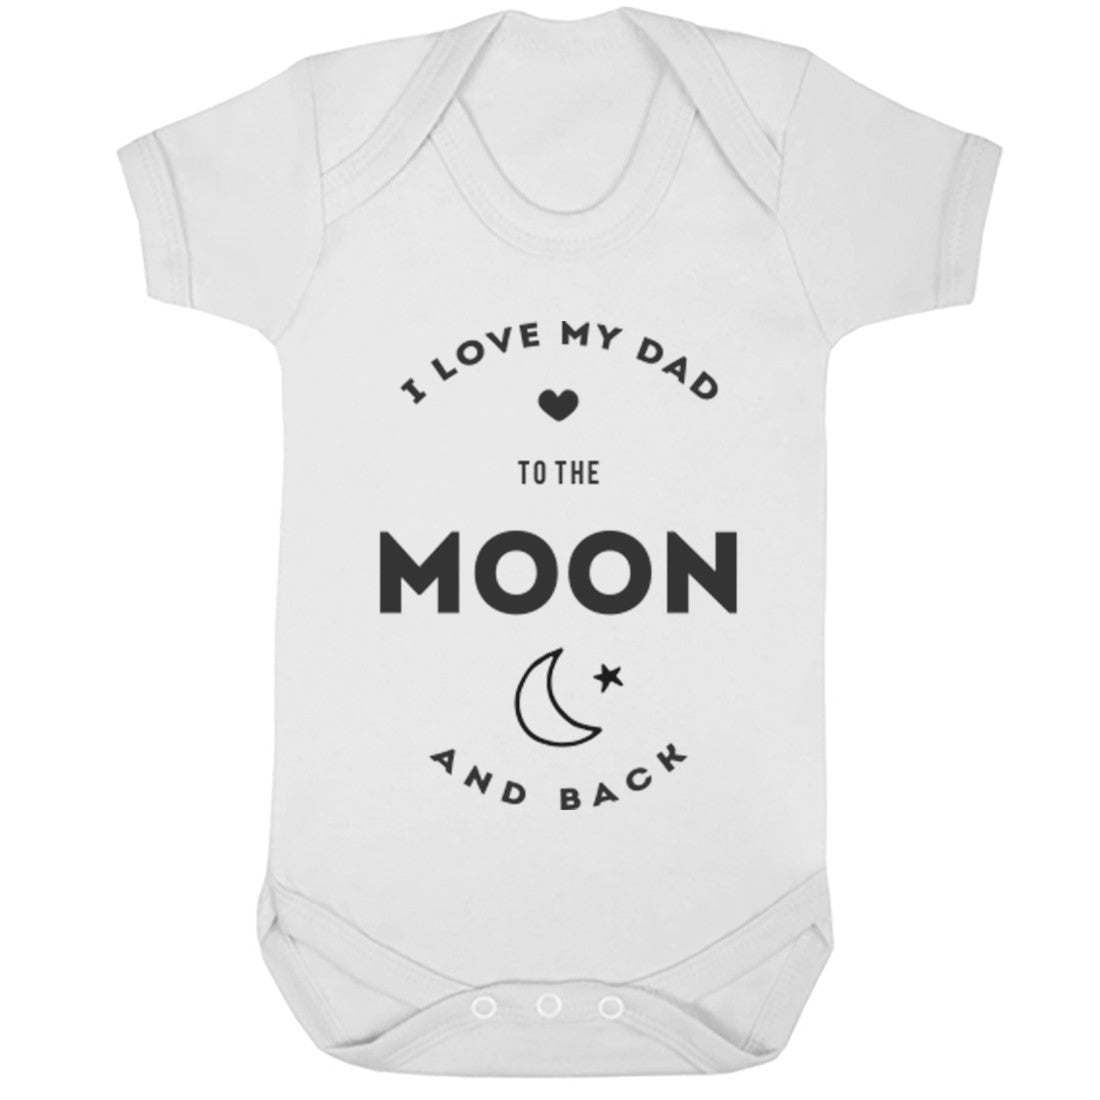 I Love My Dad To The Moon And Back Baby Vest K0398